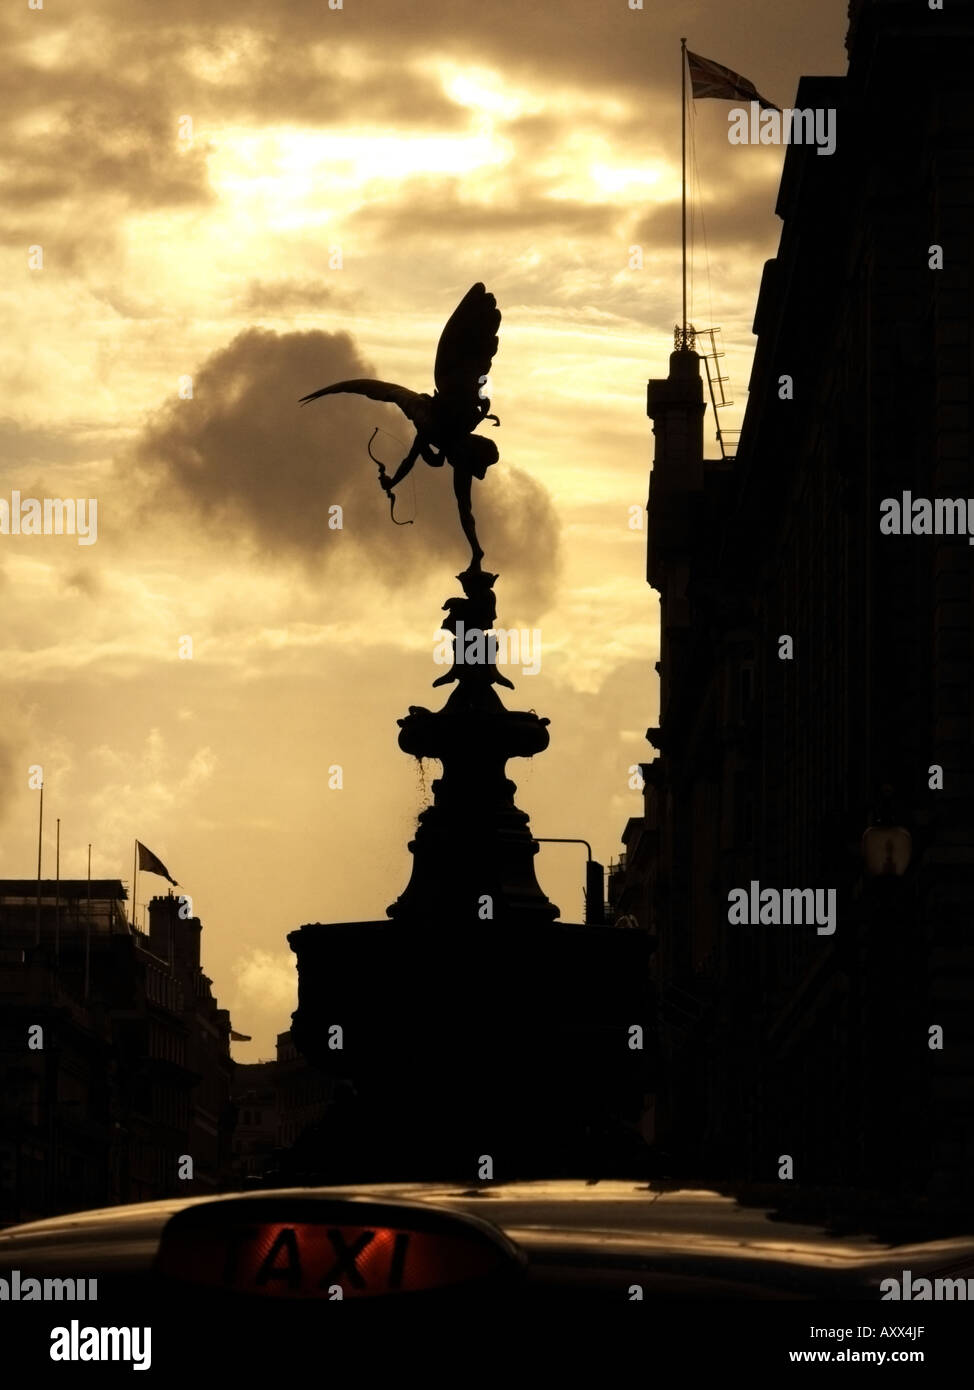 picadilly archer - Stock Image